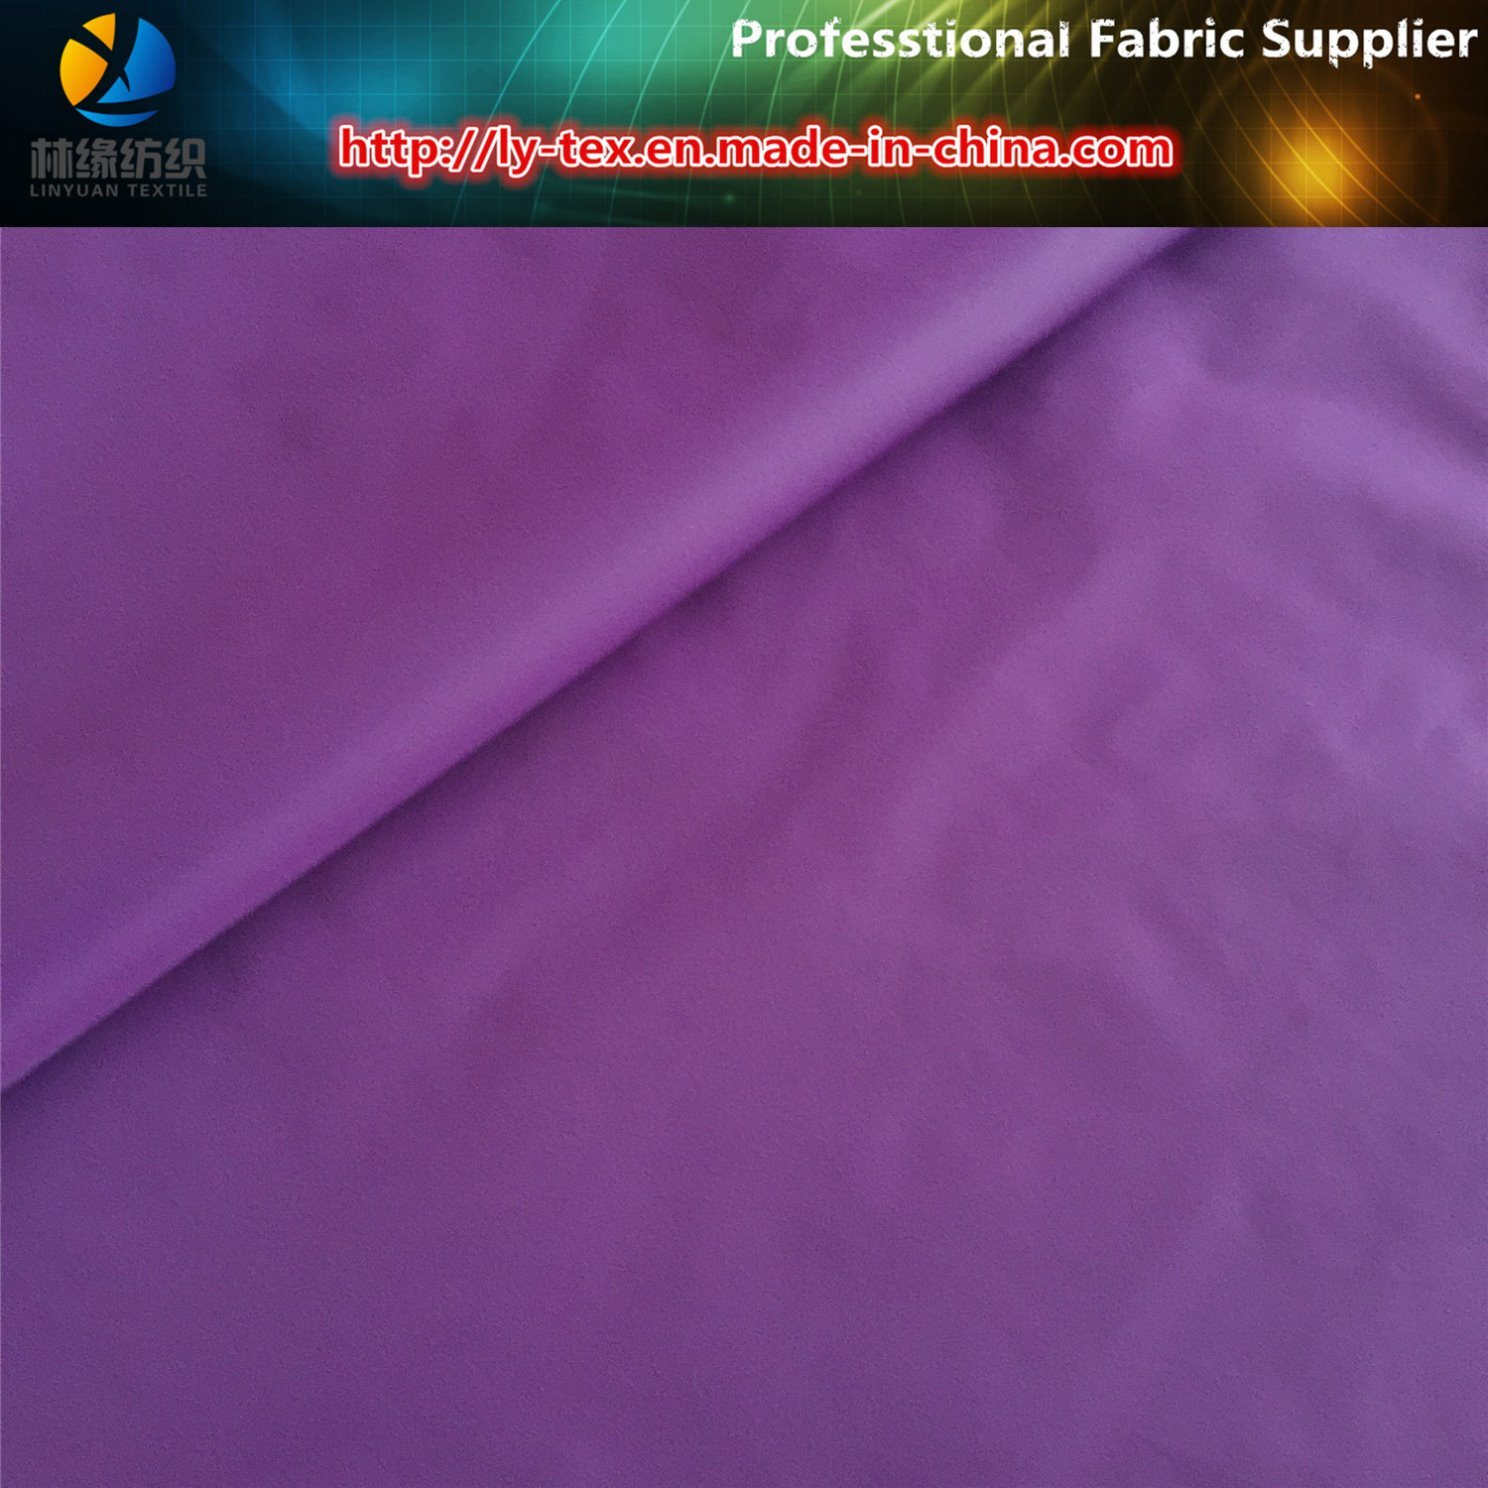 310t Nylon Taffeta, 40d*40d Nylon Fabric with Calendering for Down Jacket pictures & photos